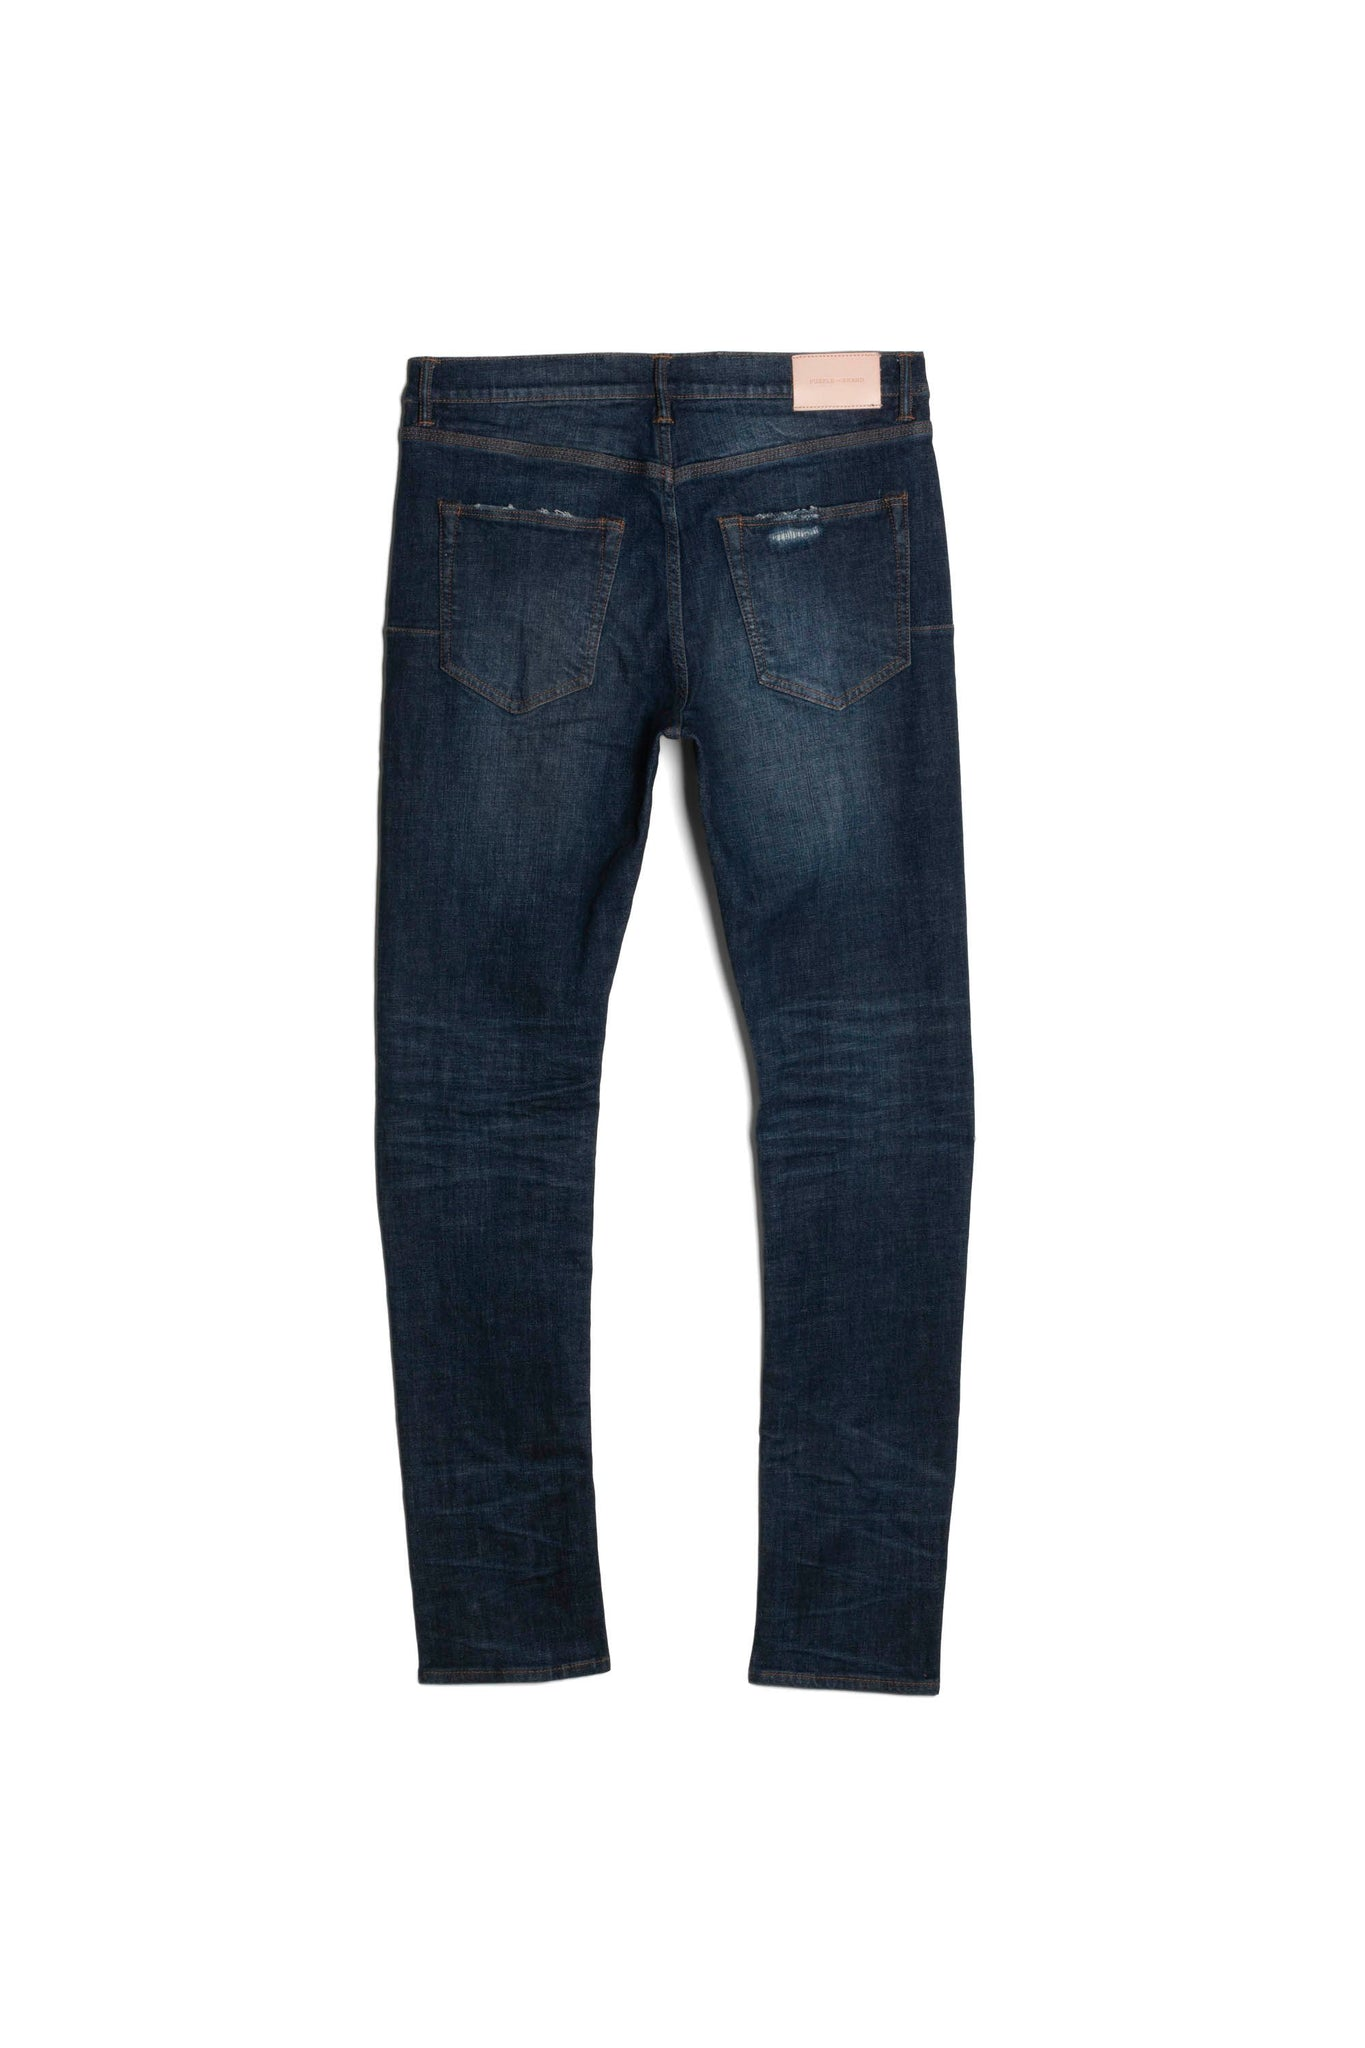 P001 LOW RISE WITH SLIM LEG - Black Indigo Laser Wash